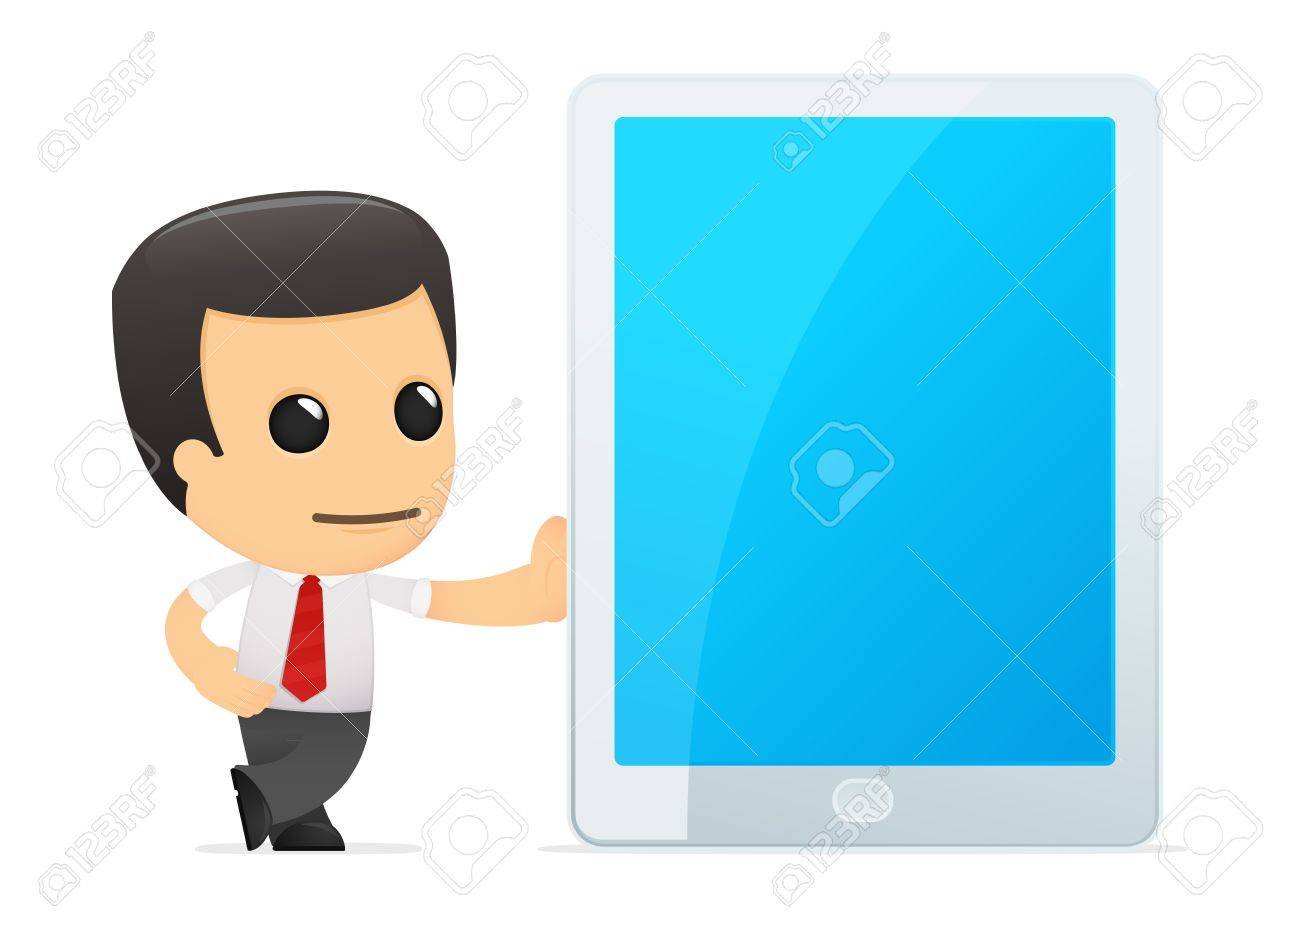 funny cartoon manager in various poses for use in advertising, presentations, brochures, blogs, documents and forms, etc. Stock Vector - 14074917